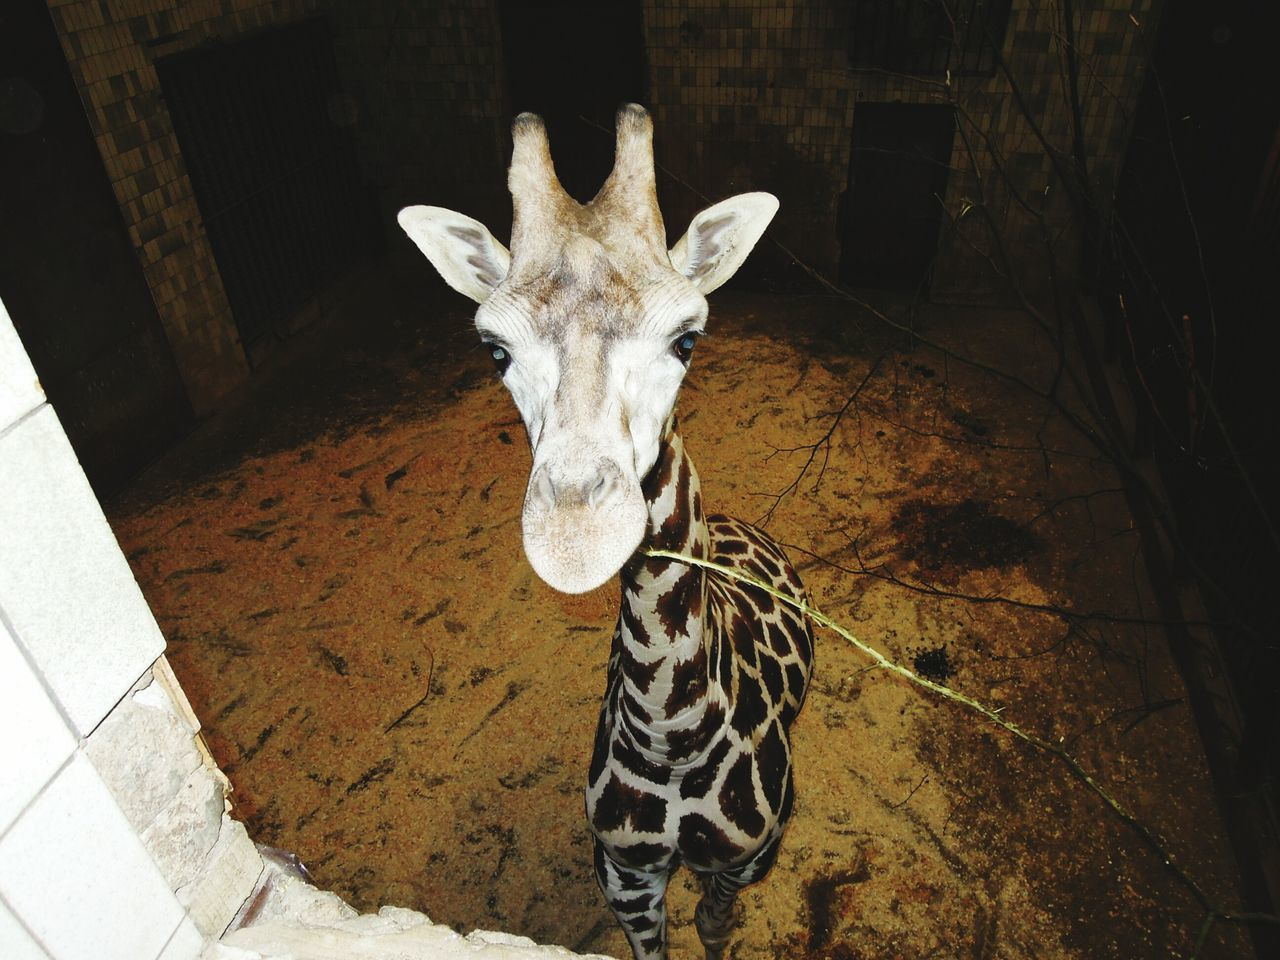 Looking At Camera Mammal One Animal Animal Themes Portrait Outdoors No People Day Zoo Animals  Czech Republic🇨🇿 Giraffe♥